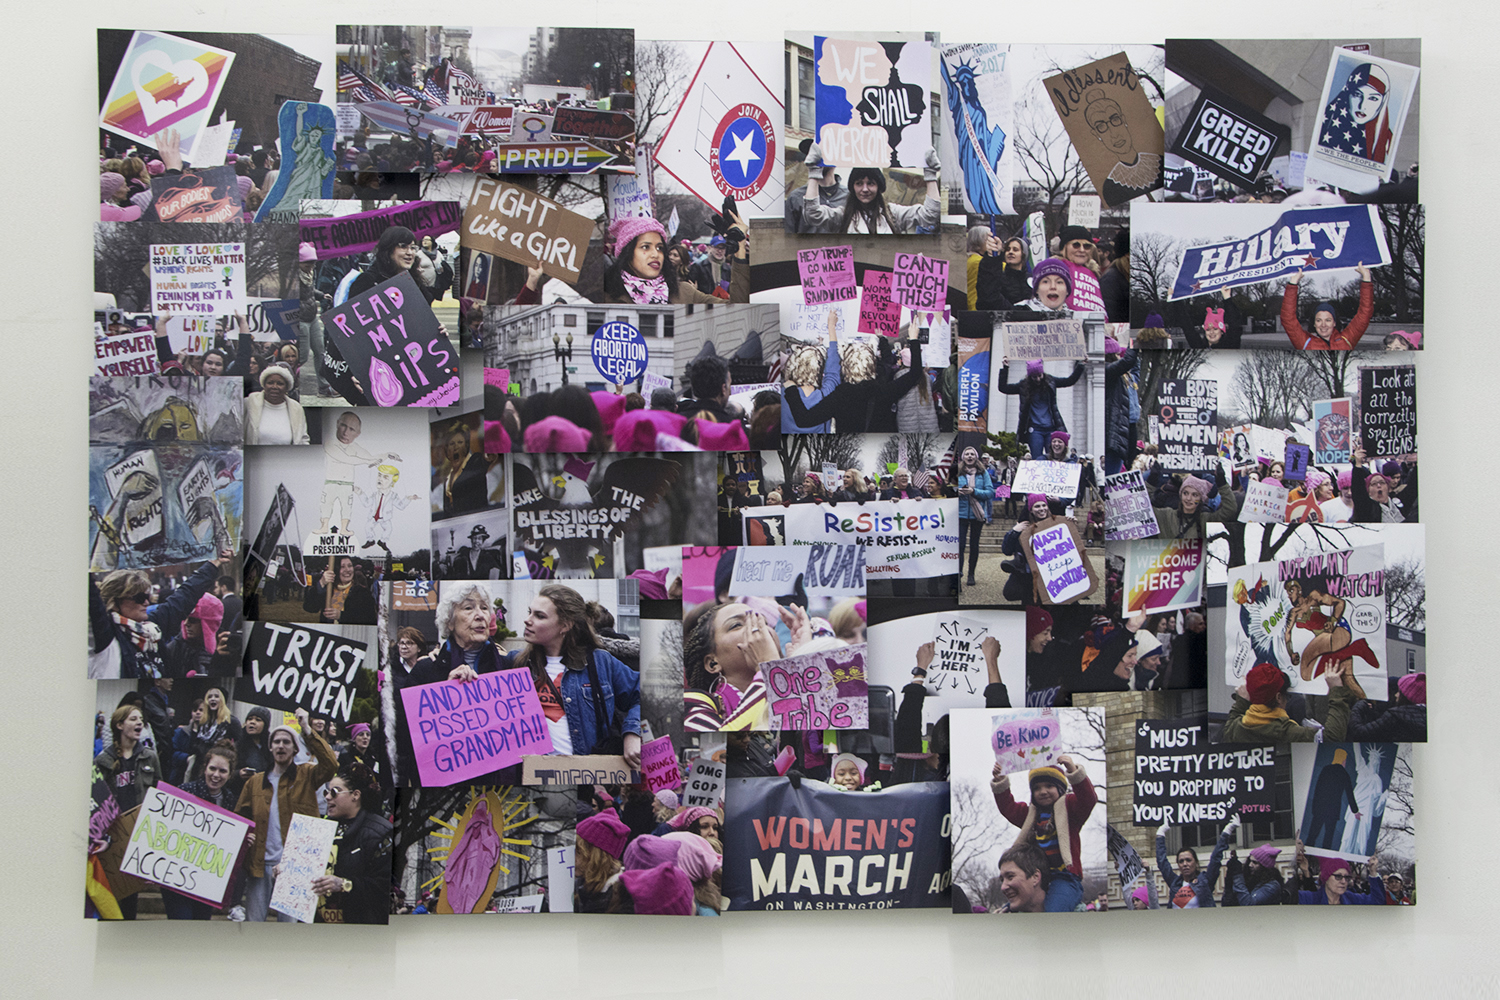 CLICK HERE TO DONATE  TO  JOYCE'S WOMEN'S MARCH PROJECT